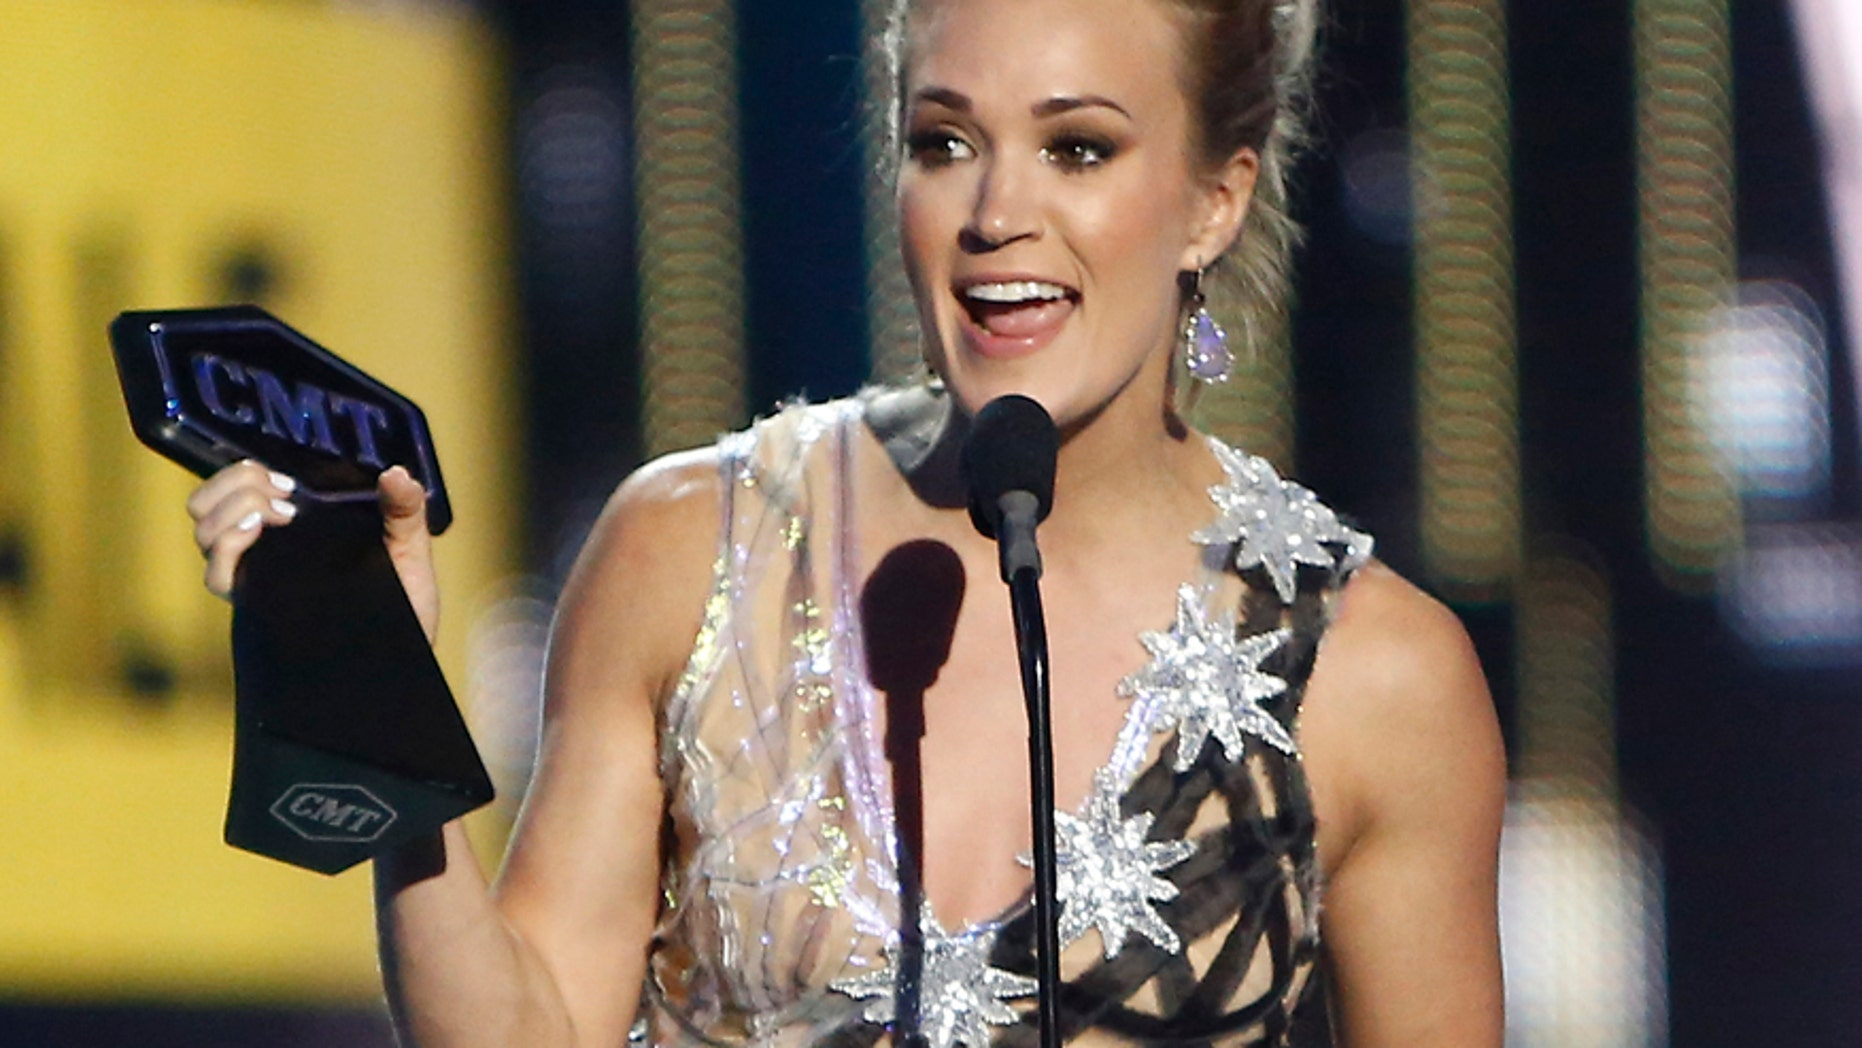 """Carrie Underwood accepts the award for female video of the year for """"Church Bells"""" at the CMT Music Awards at Music City Center on Wednesday, June 7, 2017, in Nashville, Tenn."""